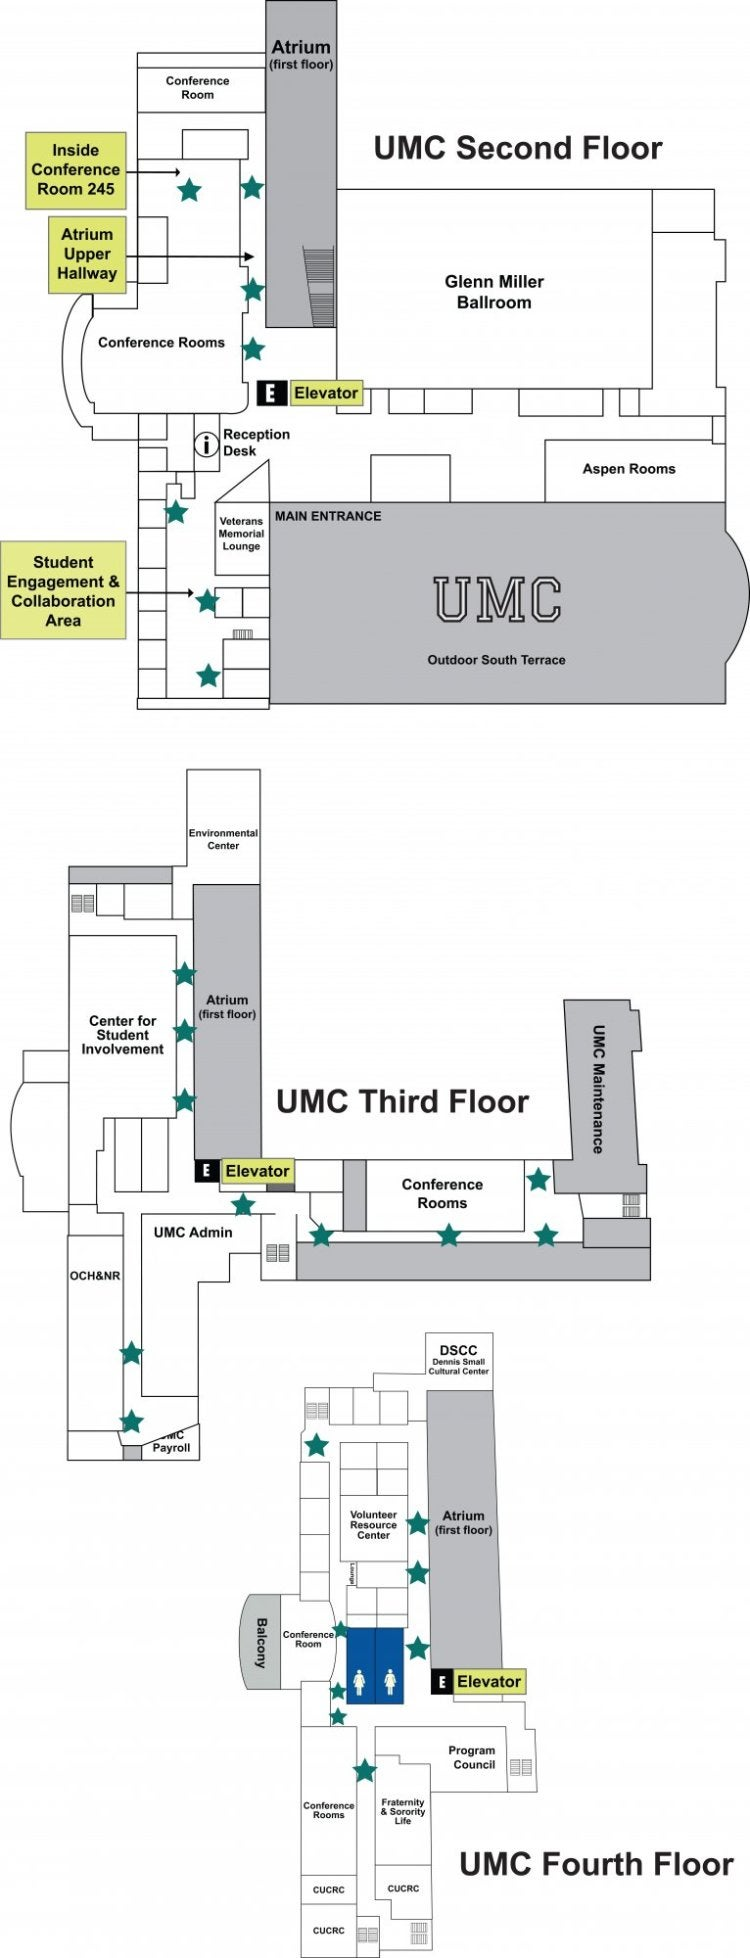 Map of the UMC Student Arts Program Display Areas on the second, third and fourth floor of the UMC